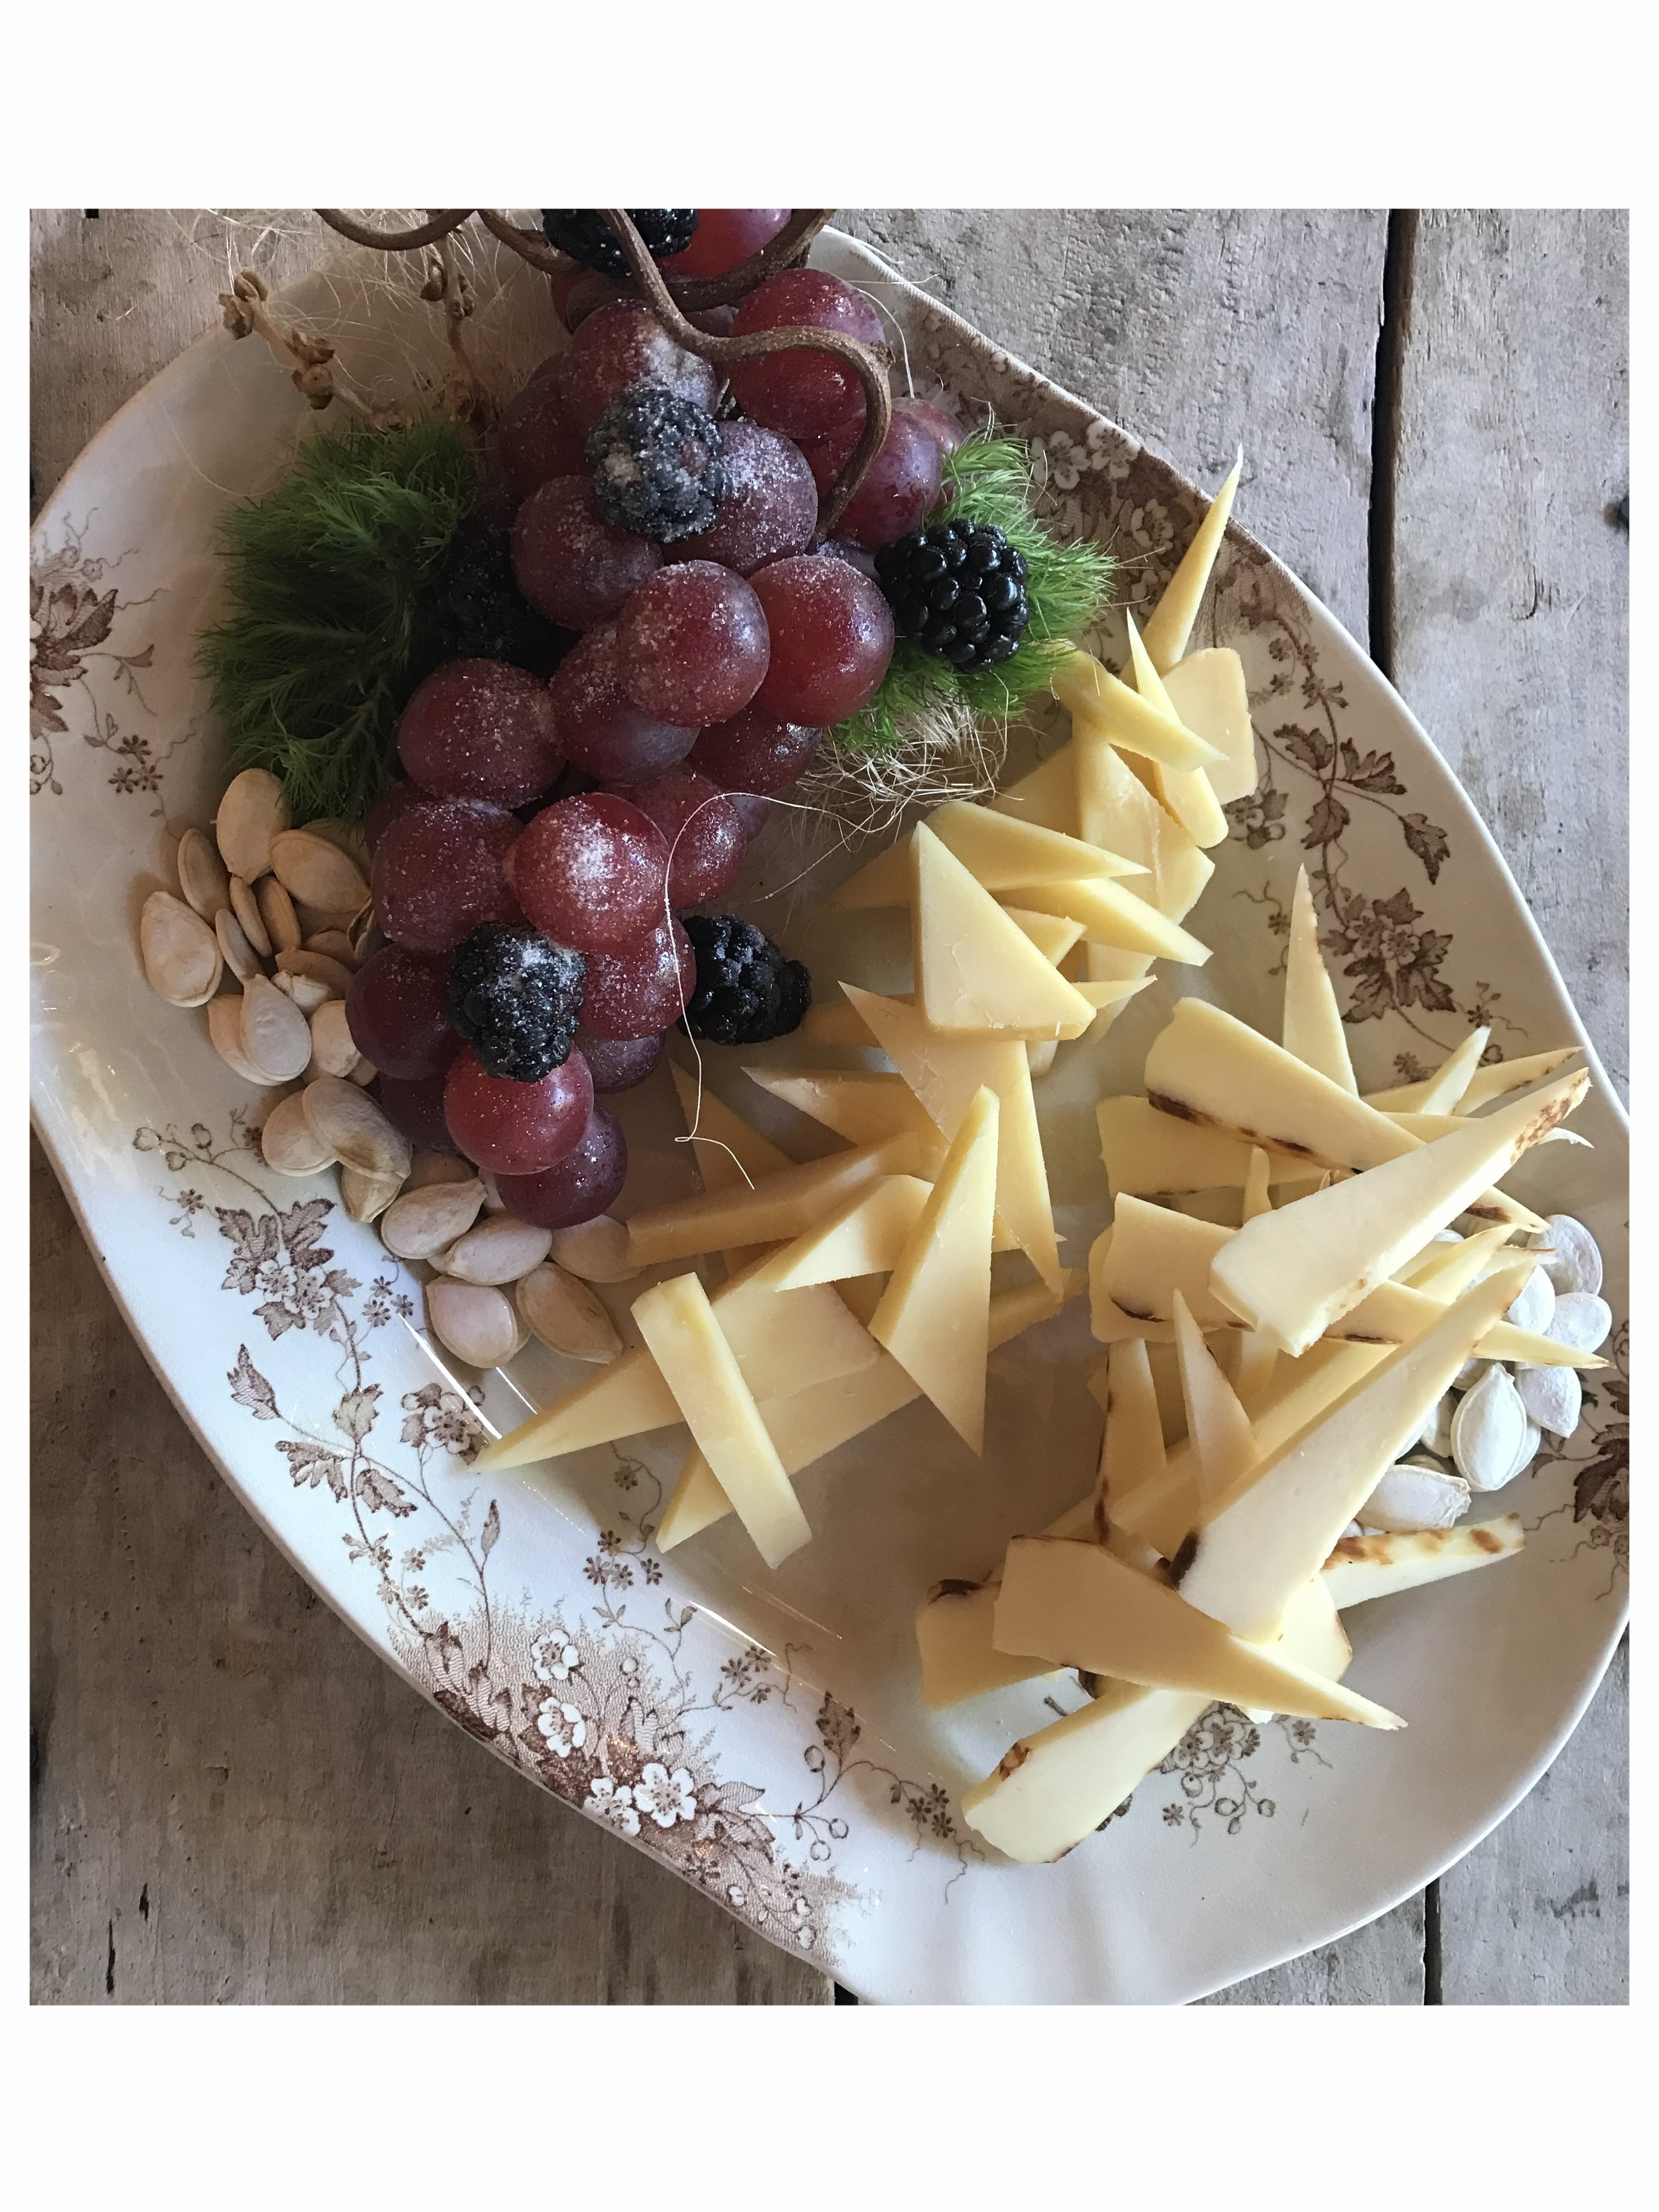 Bridal Cheese and Fruit Platter